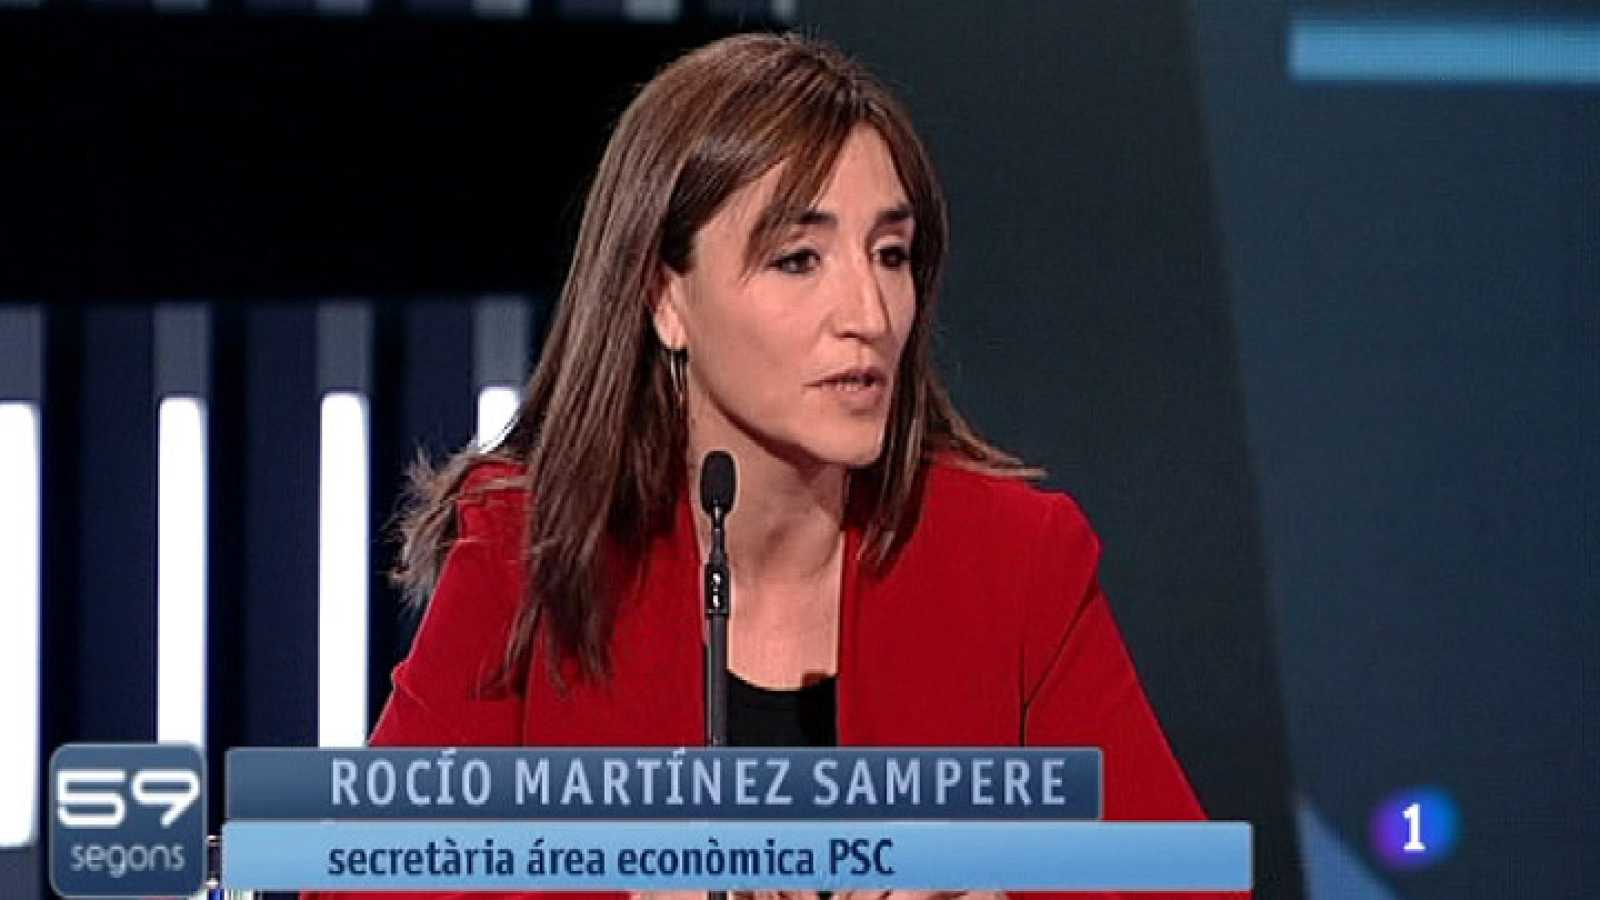 59 segons -  Rocío Martínez Sampere